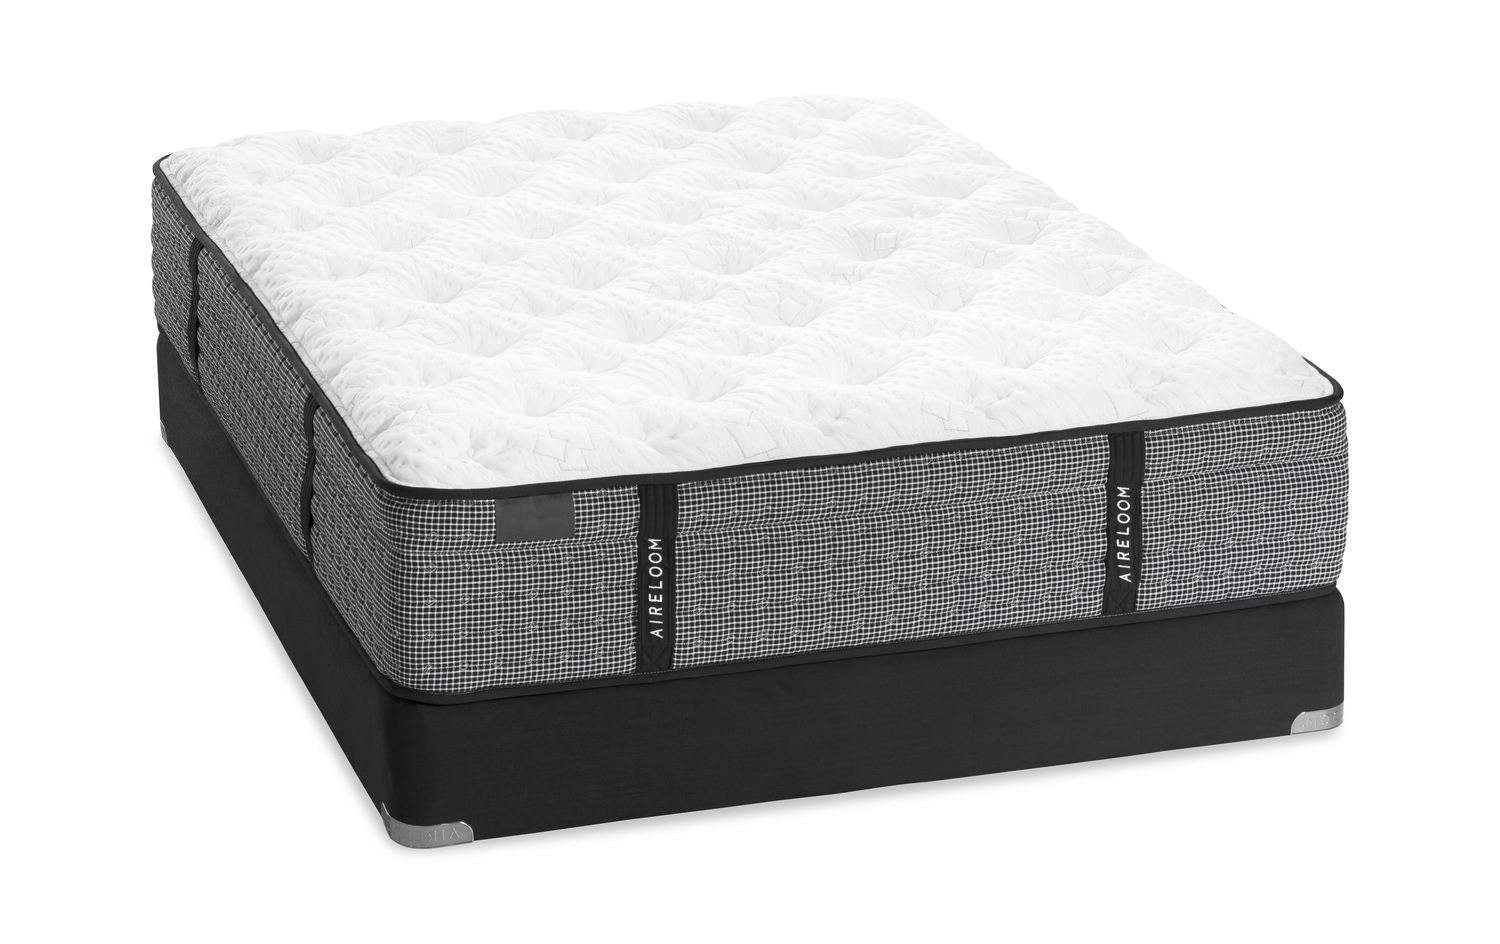 La Collina Plush Mattress Set With Low Profile Foundation By Aireloom Hom Furniture